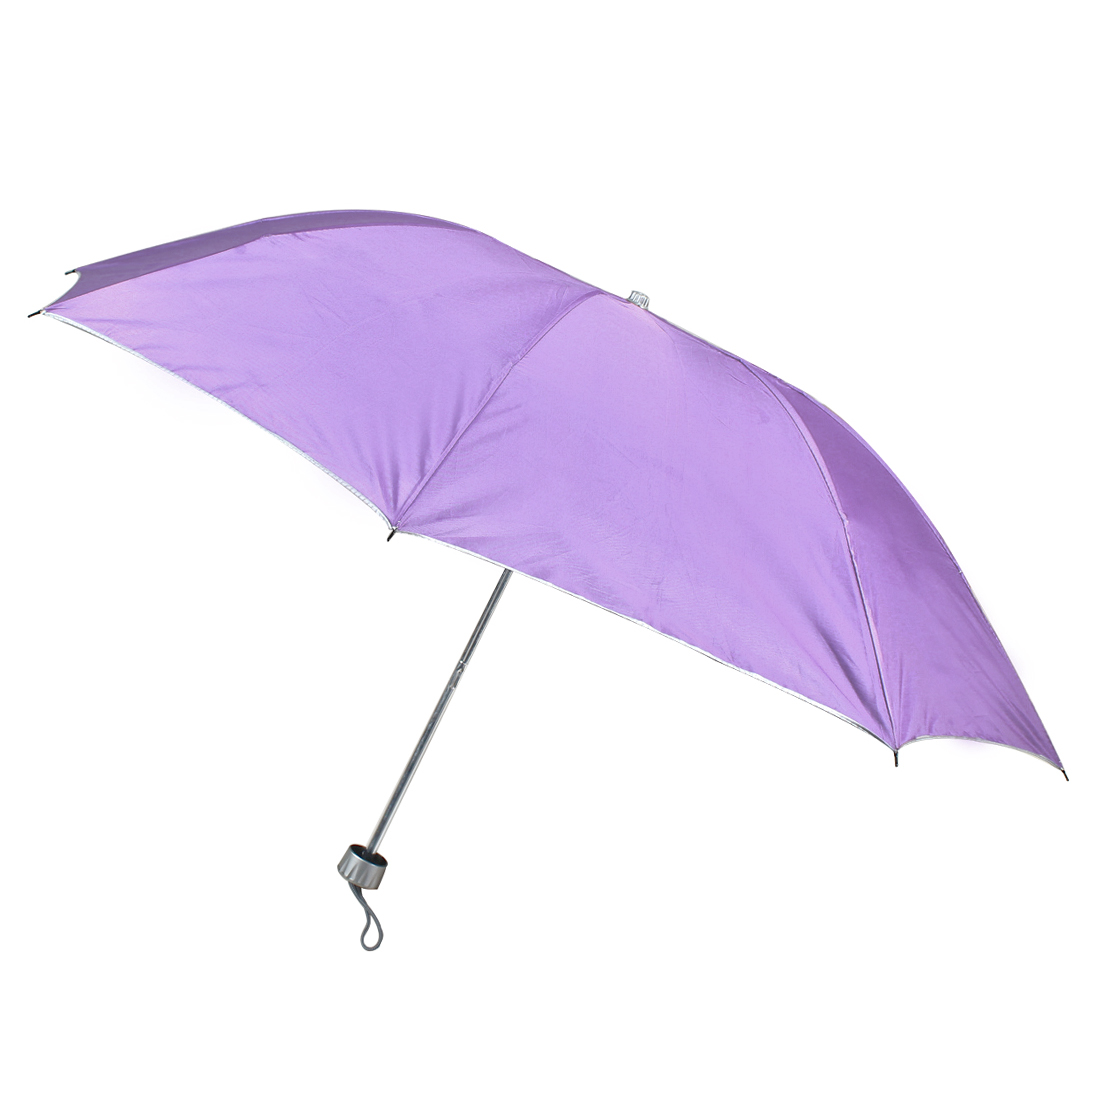 Portable Retractable Shaft Folded Handheld Rain Sun Umbrella Light Purple